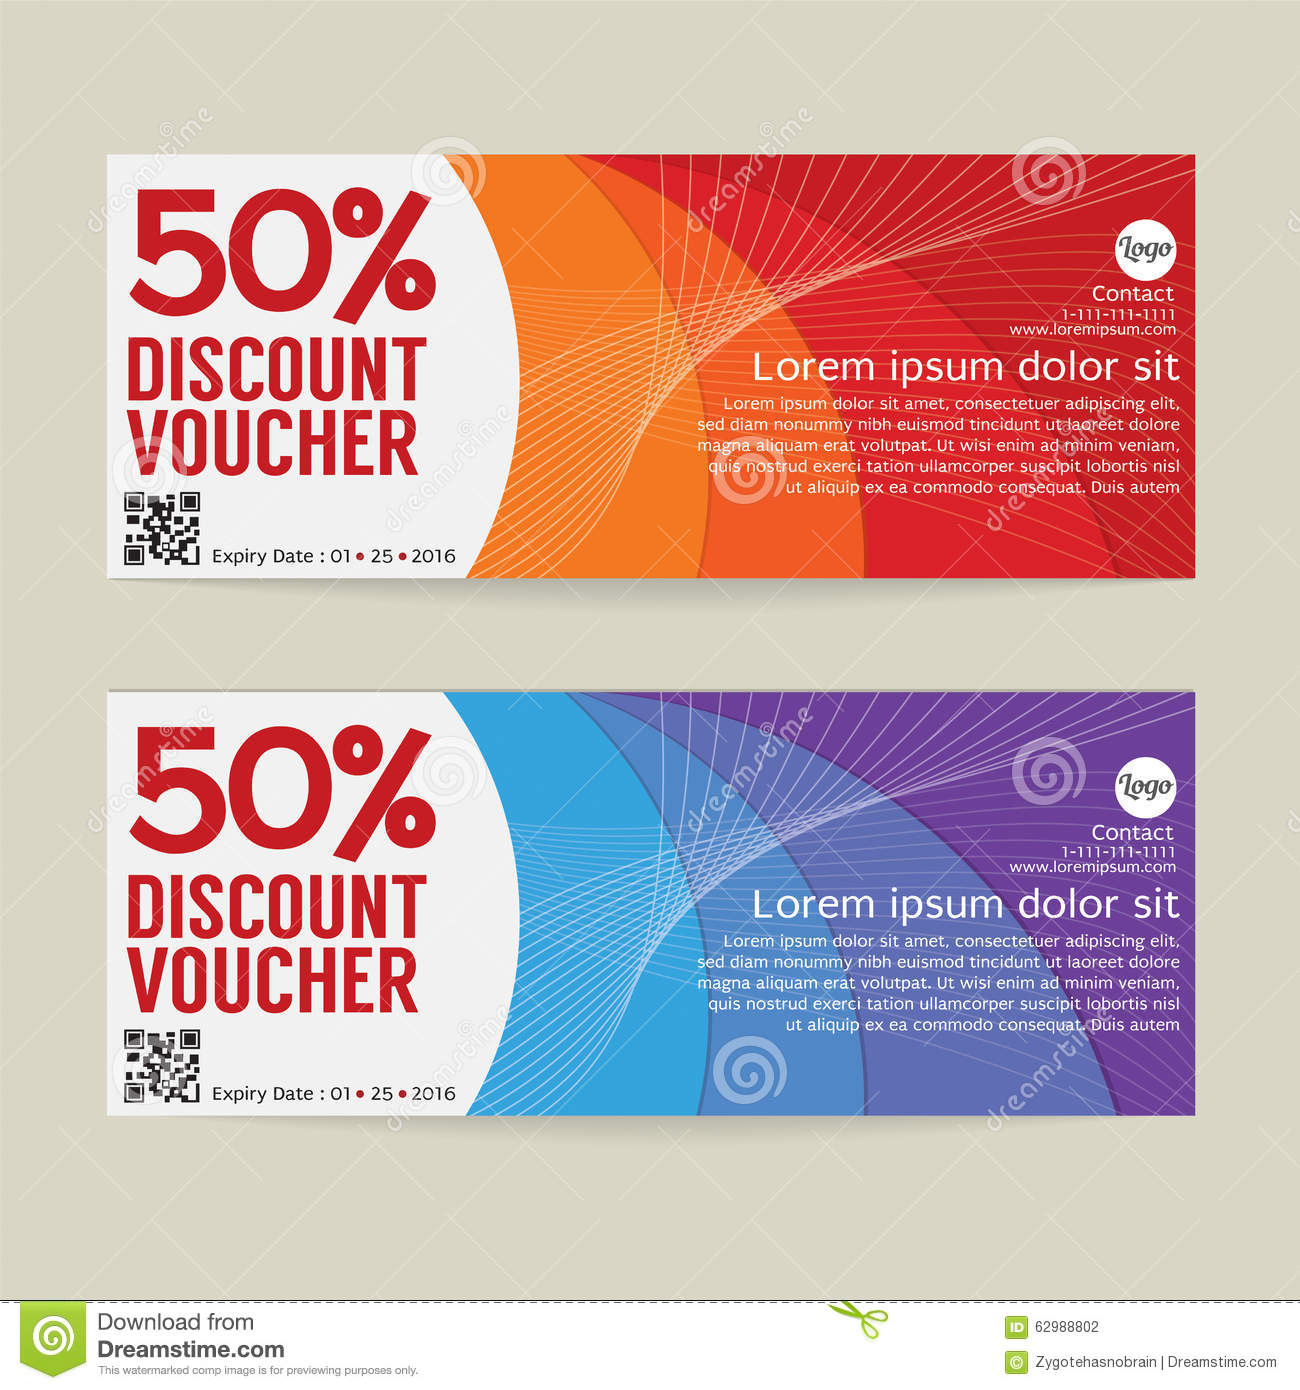 Discount coupons for kingdom of dreams